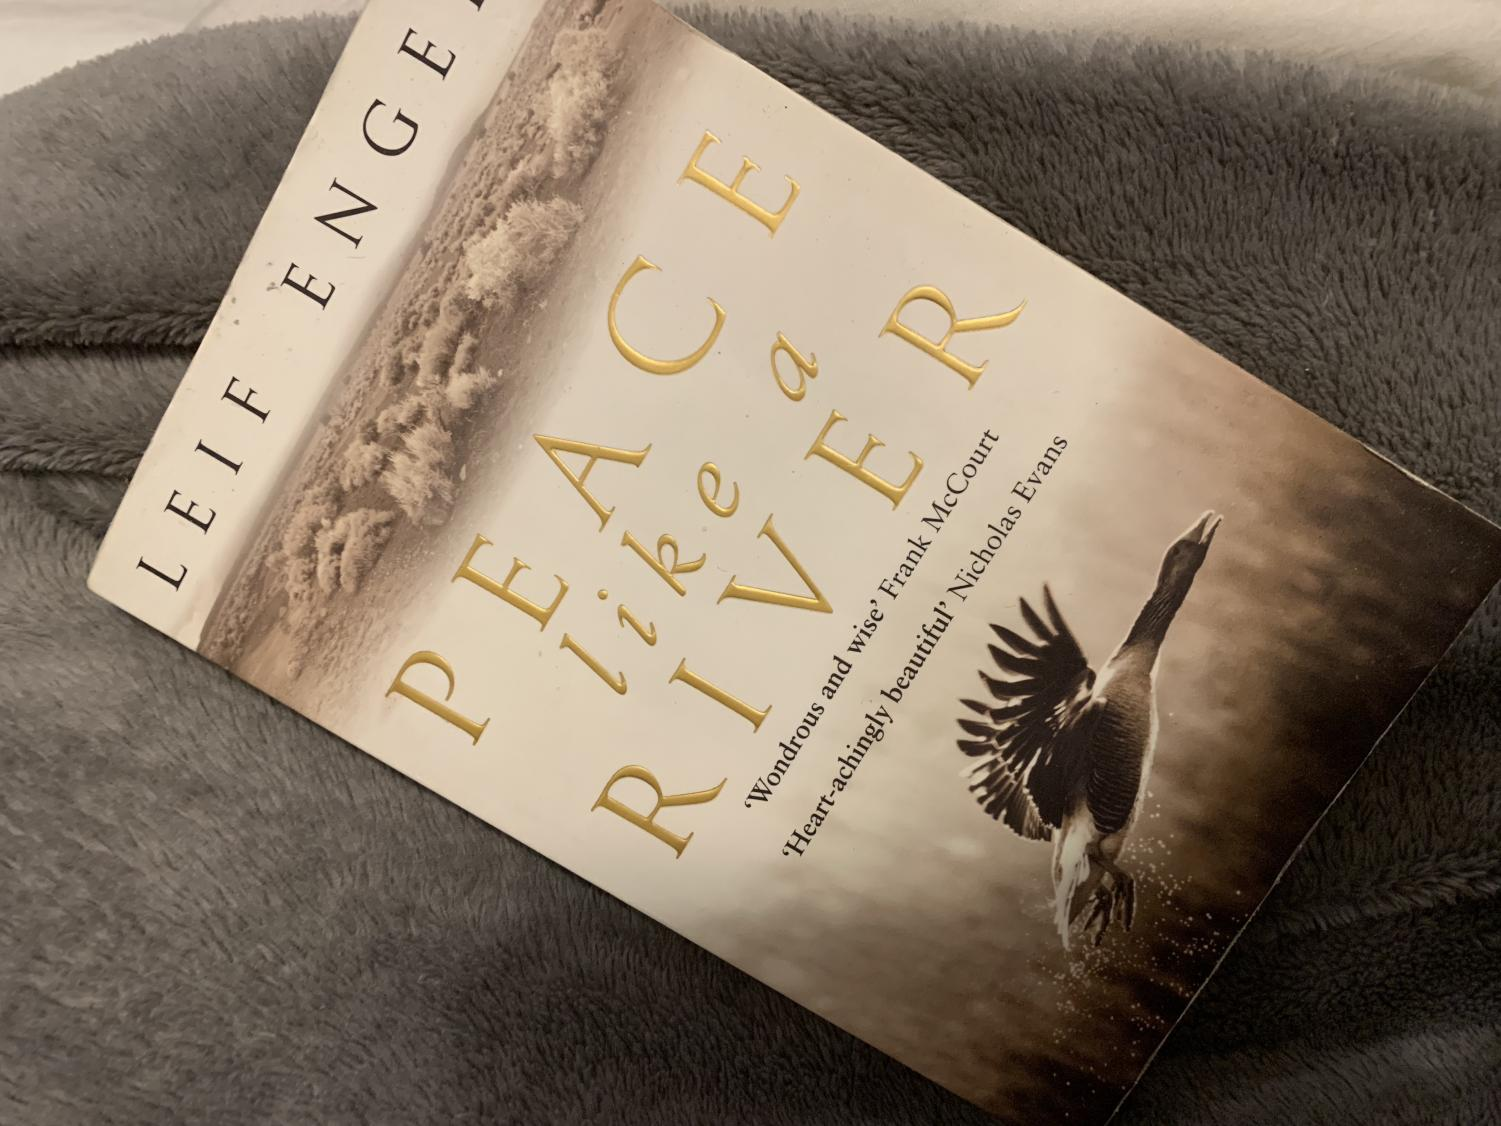 Peace Like a River is one of the most provocative and elegantly written books of all time.